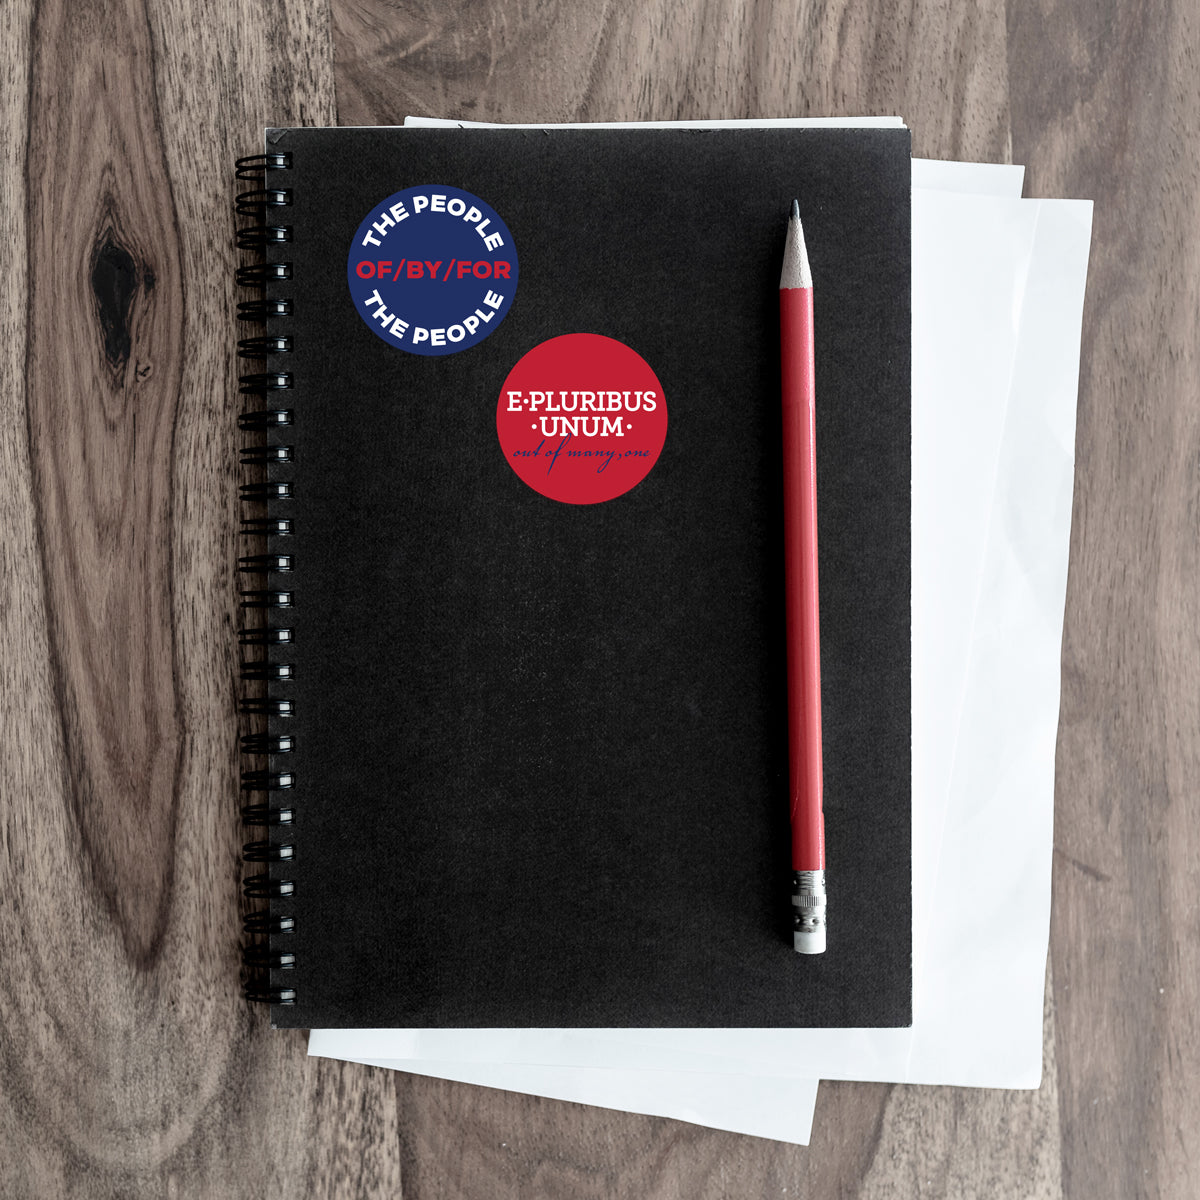 e pluribus and people stickers on a notebook